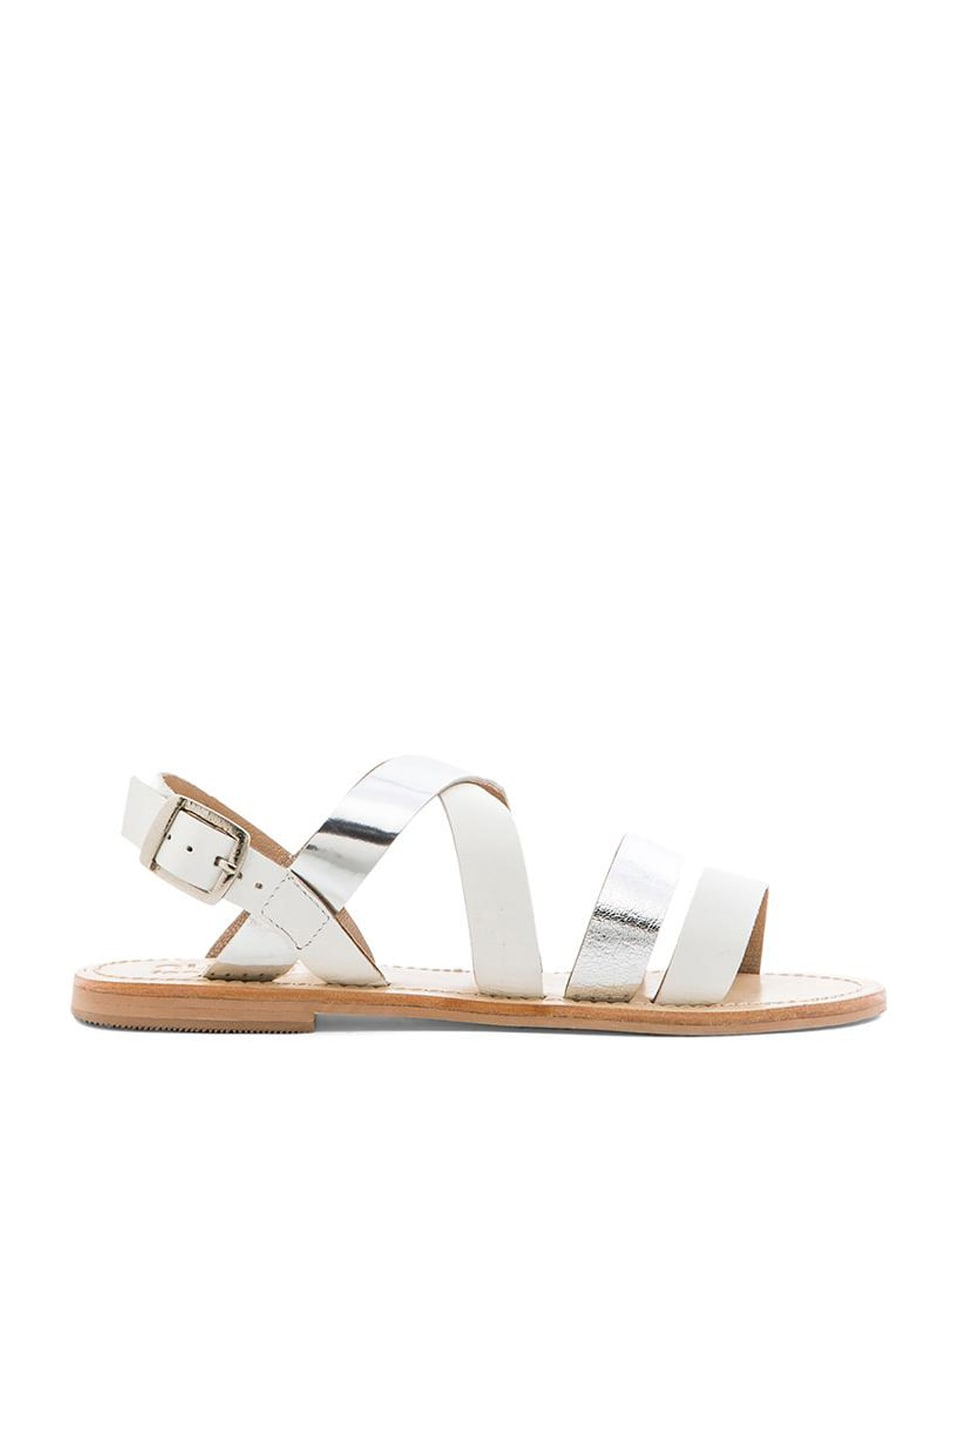 SOLES X NUDE Warlander Sandal in Silver & White